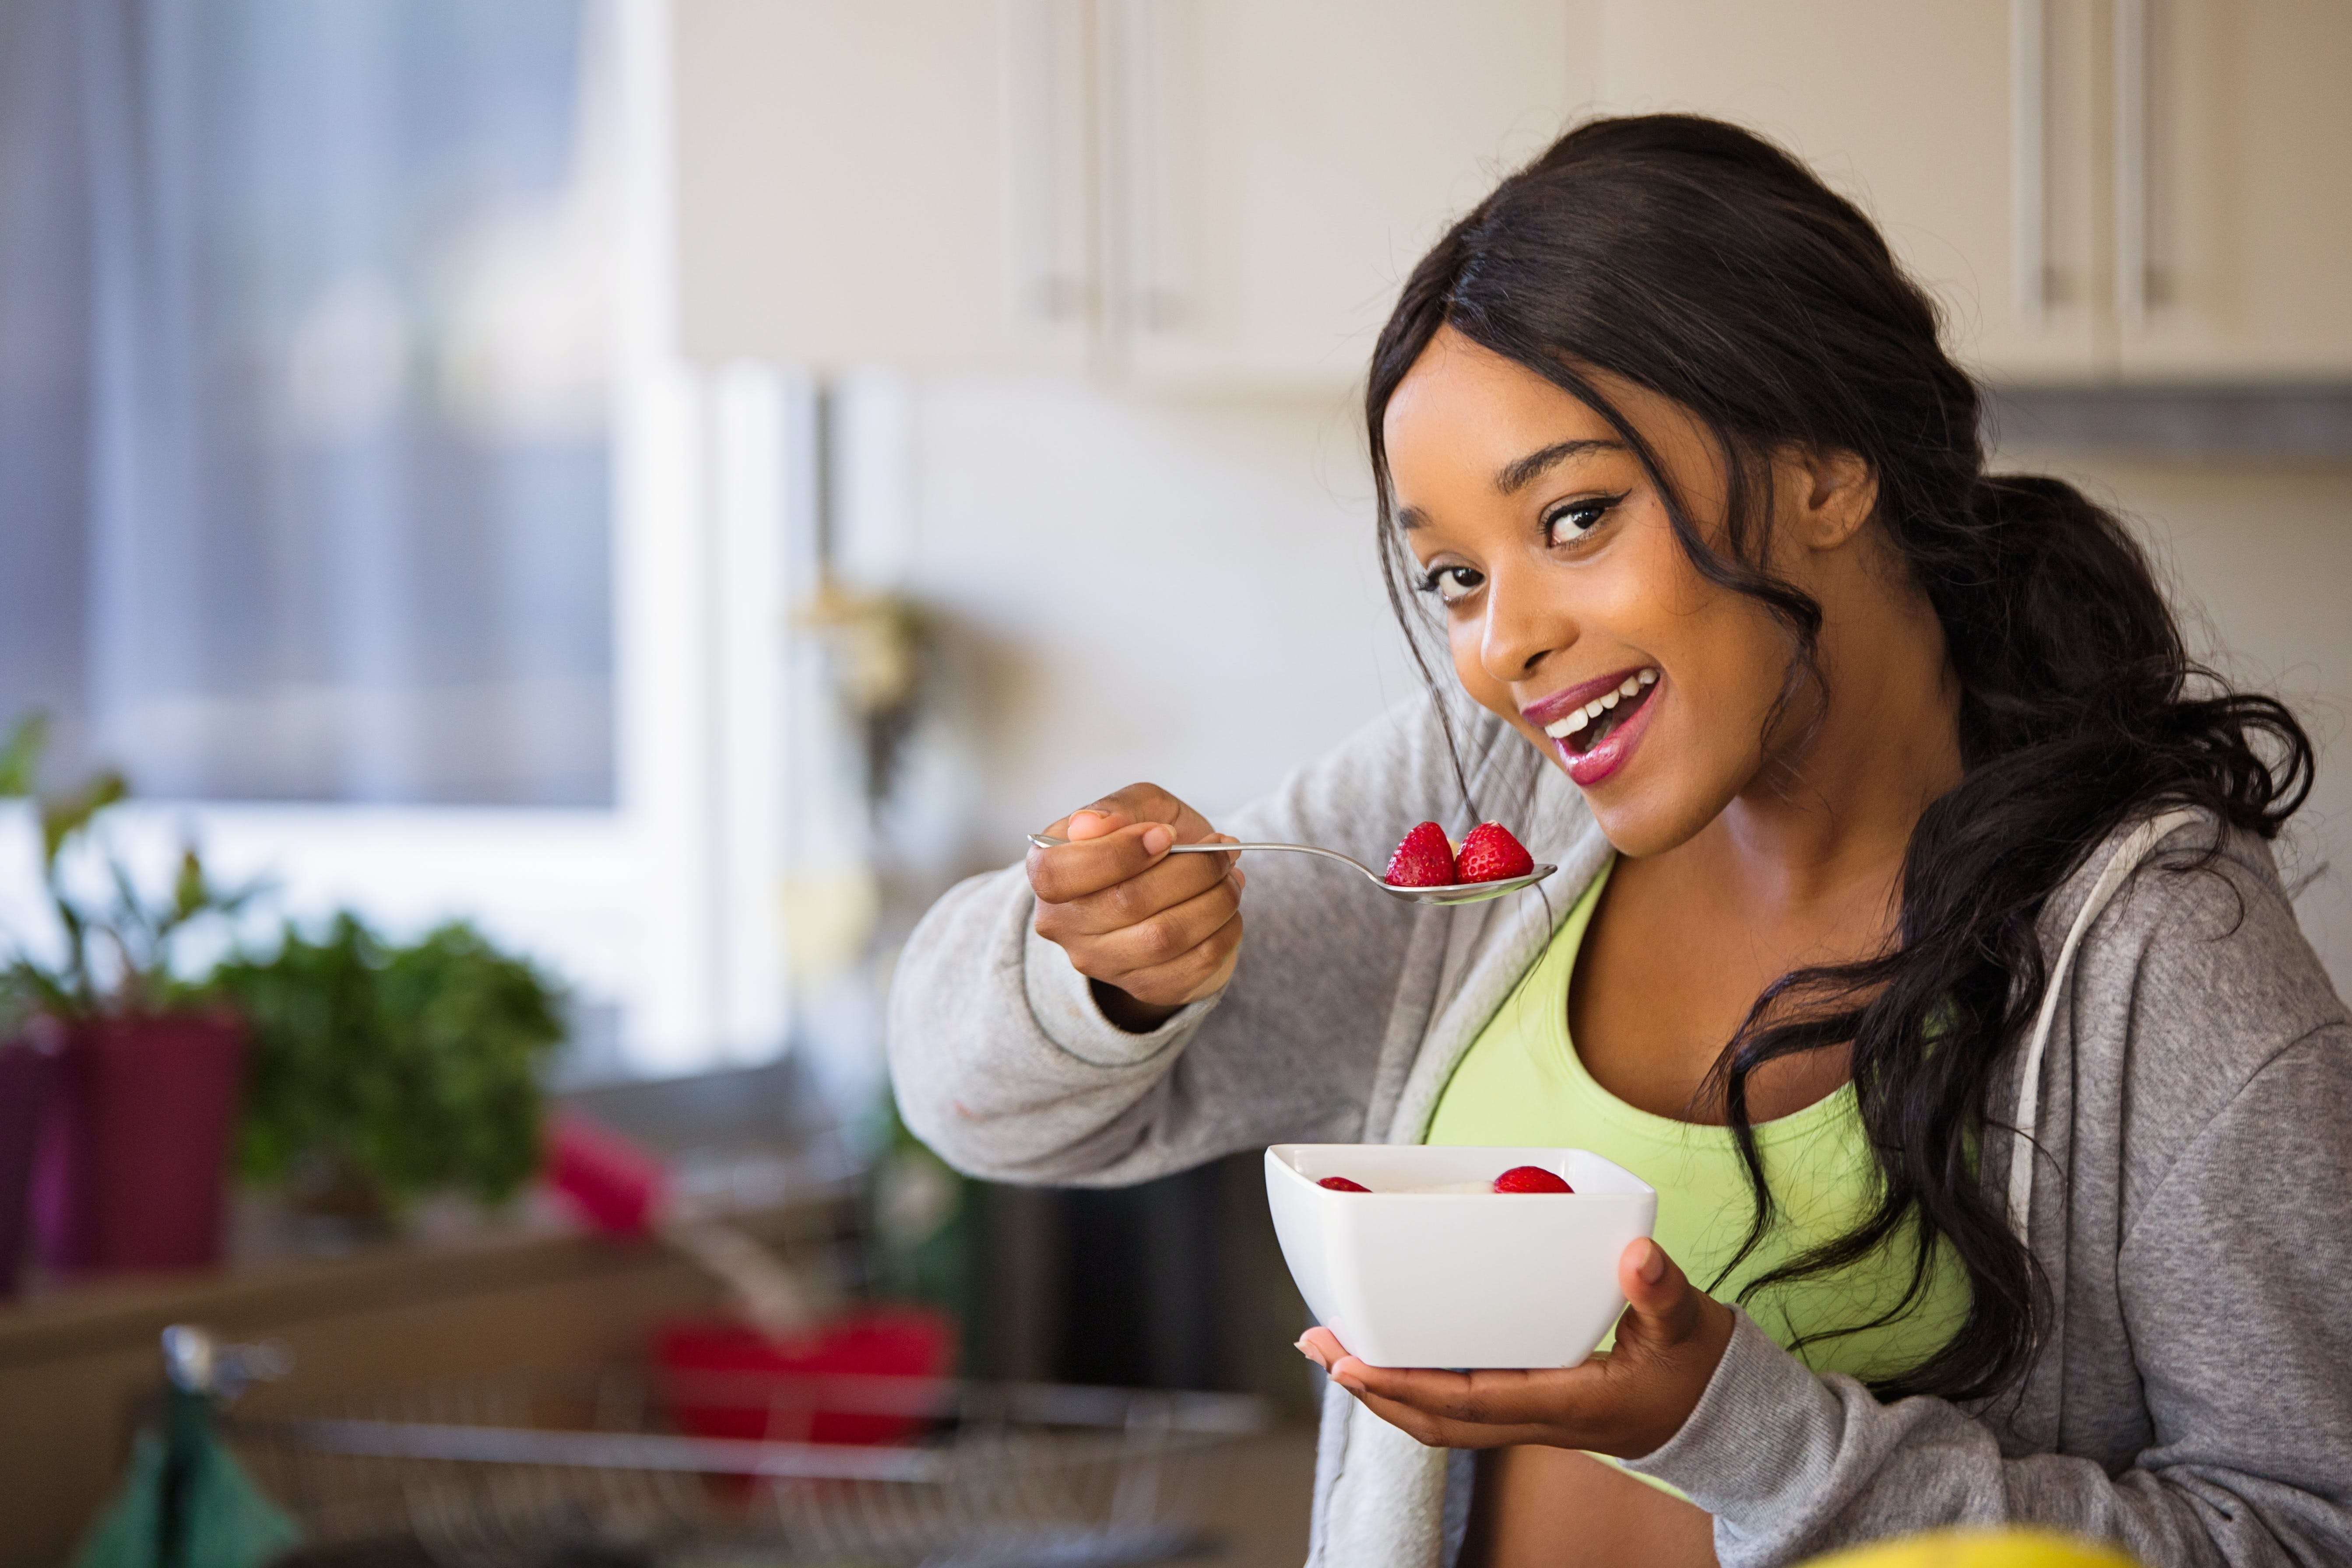 Woman About to Eat Strawberry